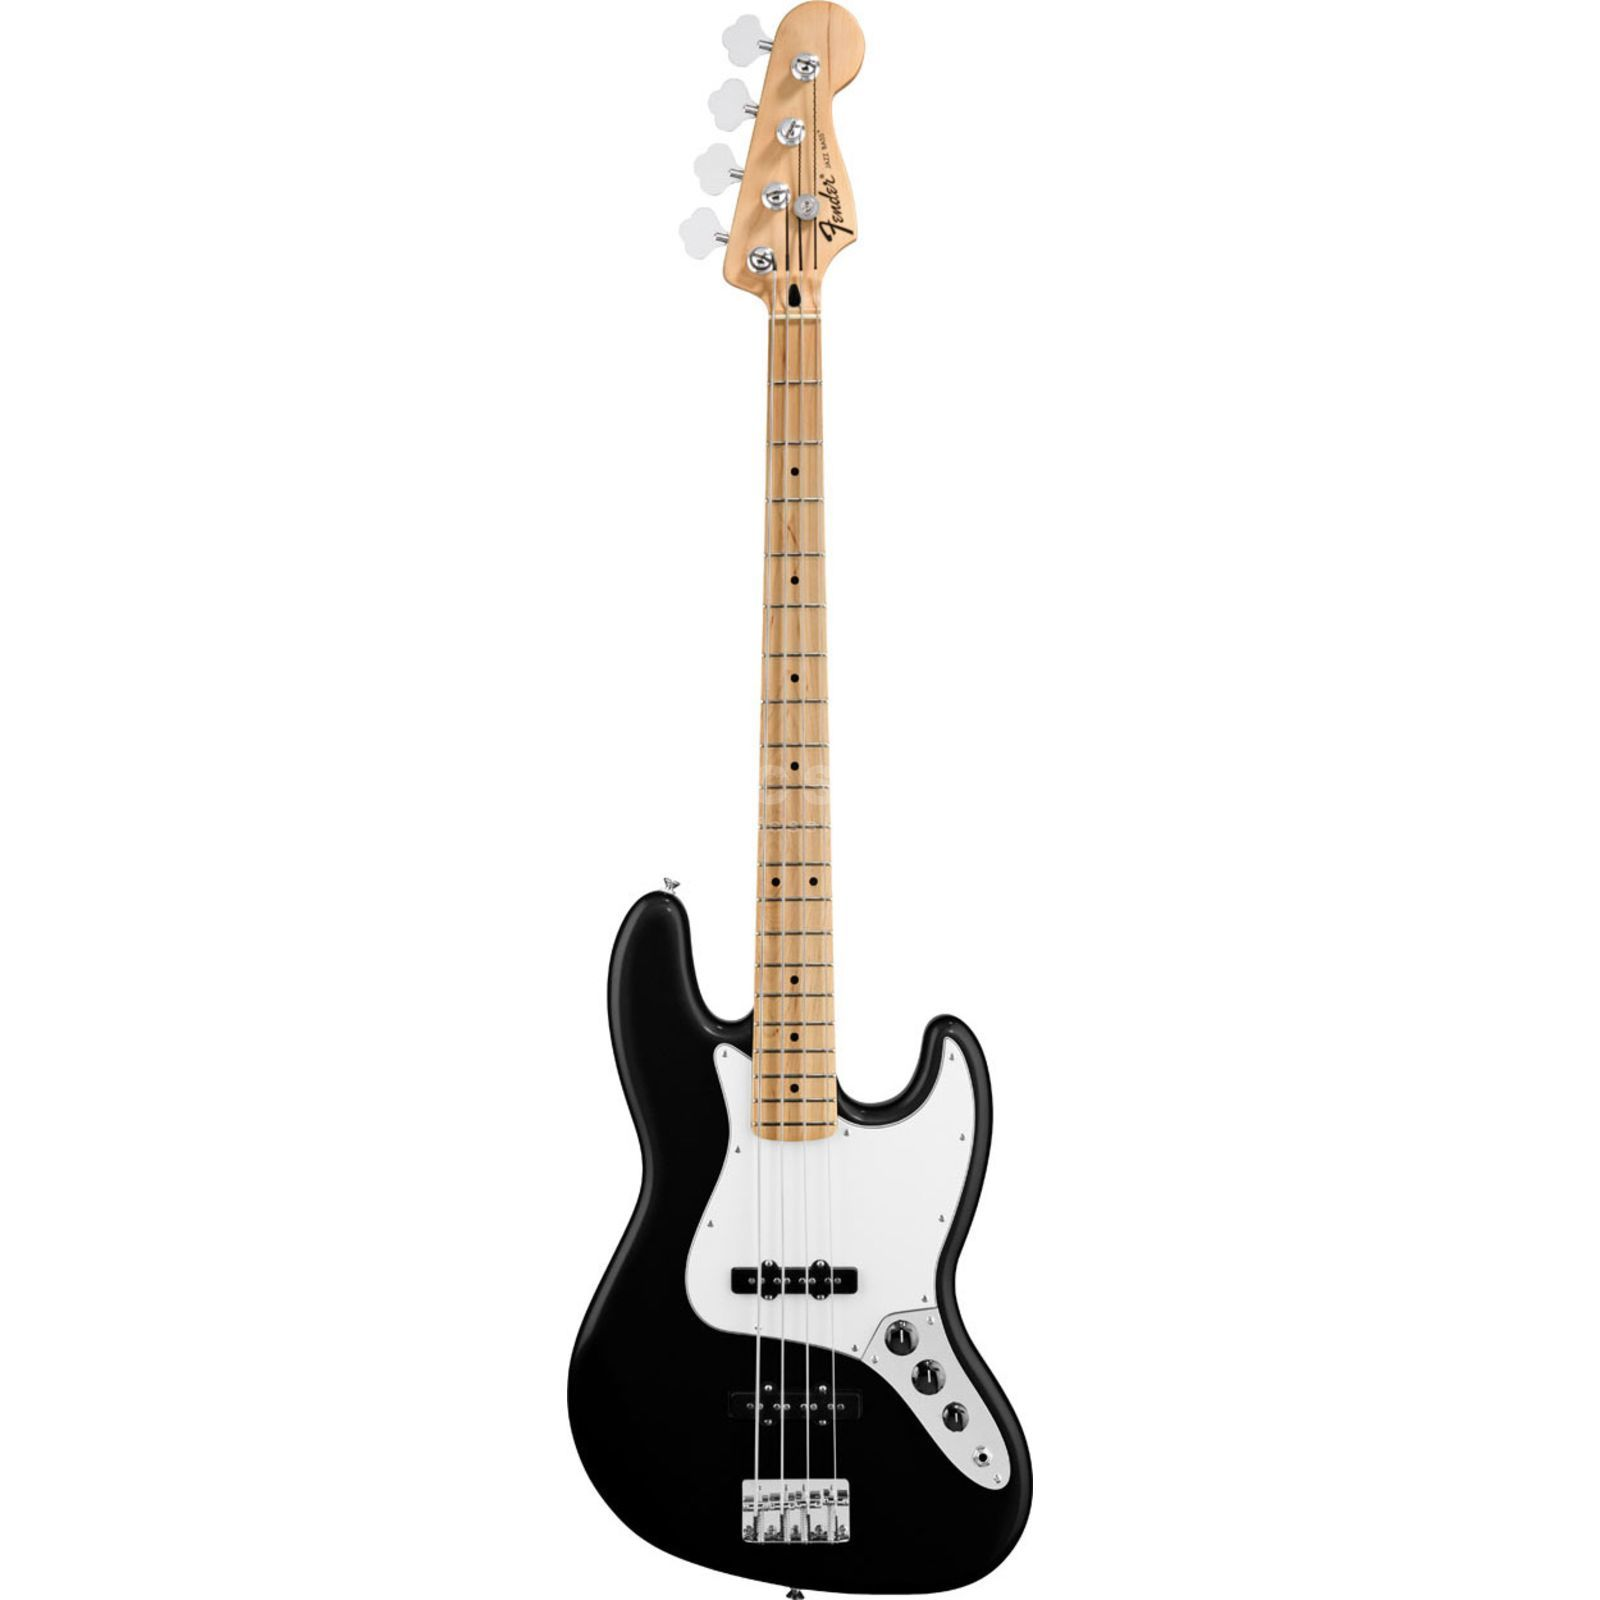 Fender Standard Jazz Bass MN Black Изображение товара